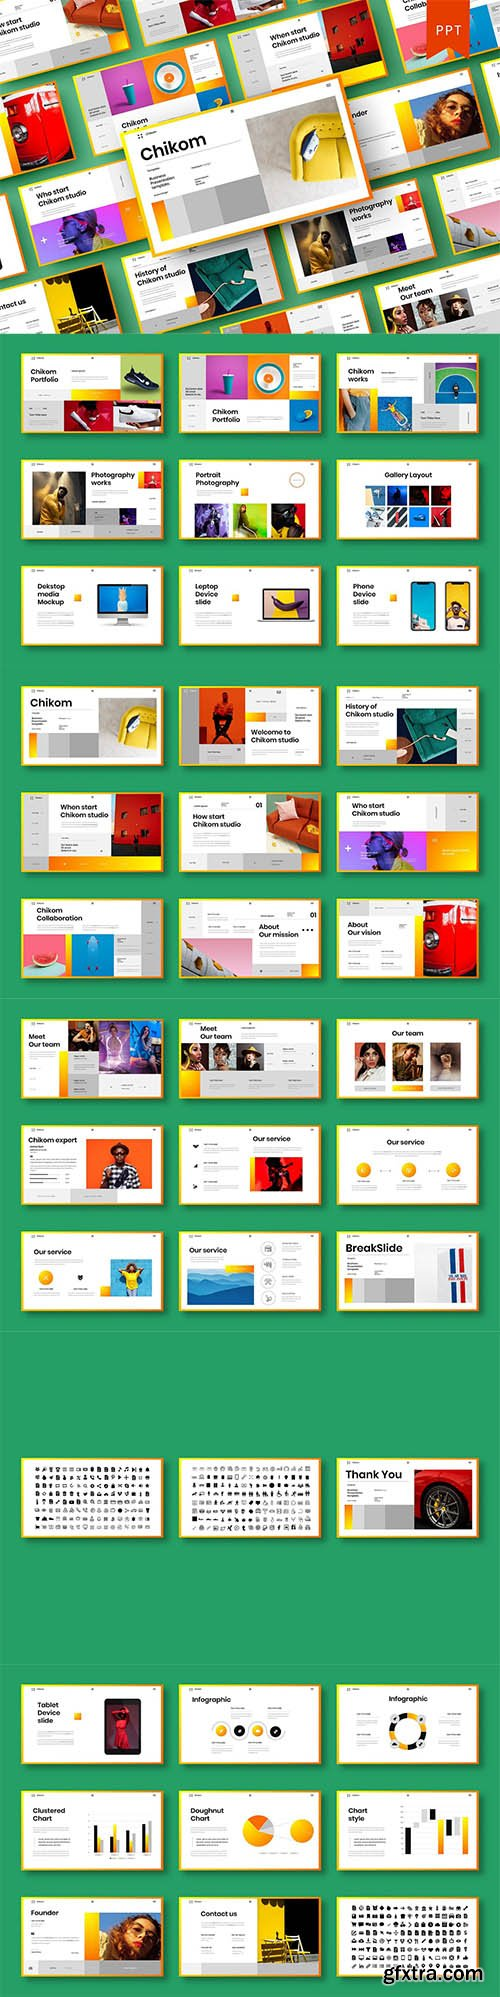 Chikom - Business PowerPoint Template